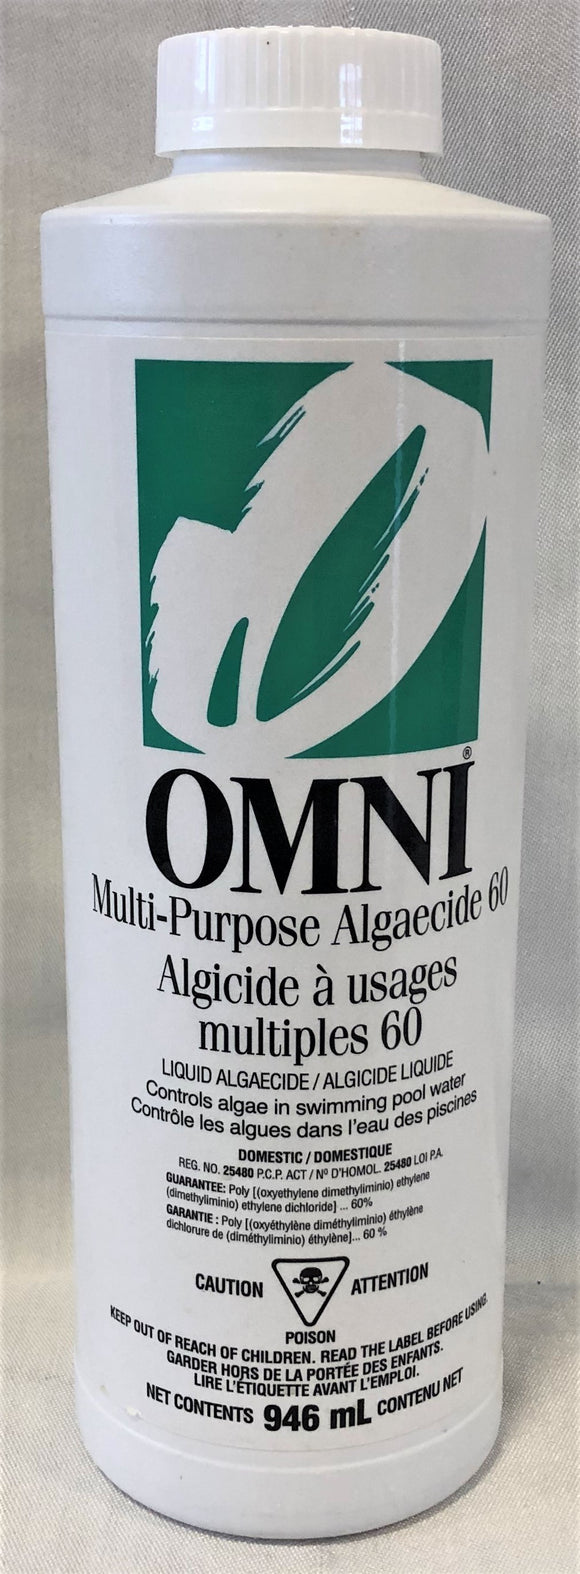 Omni Multi-Purpose Algaecide 60%